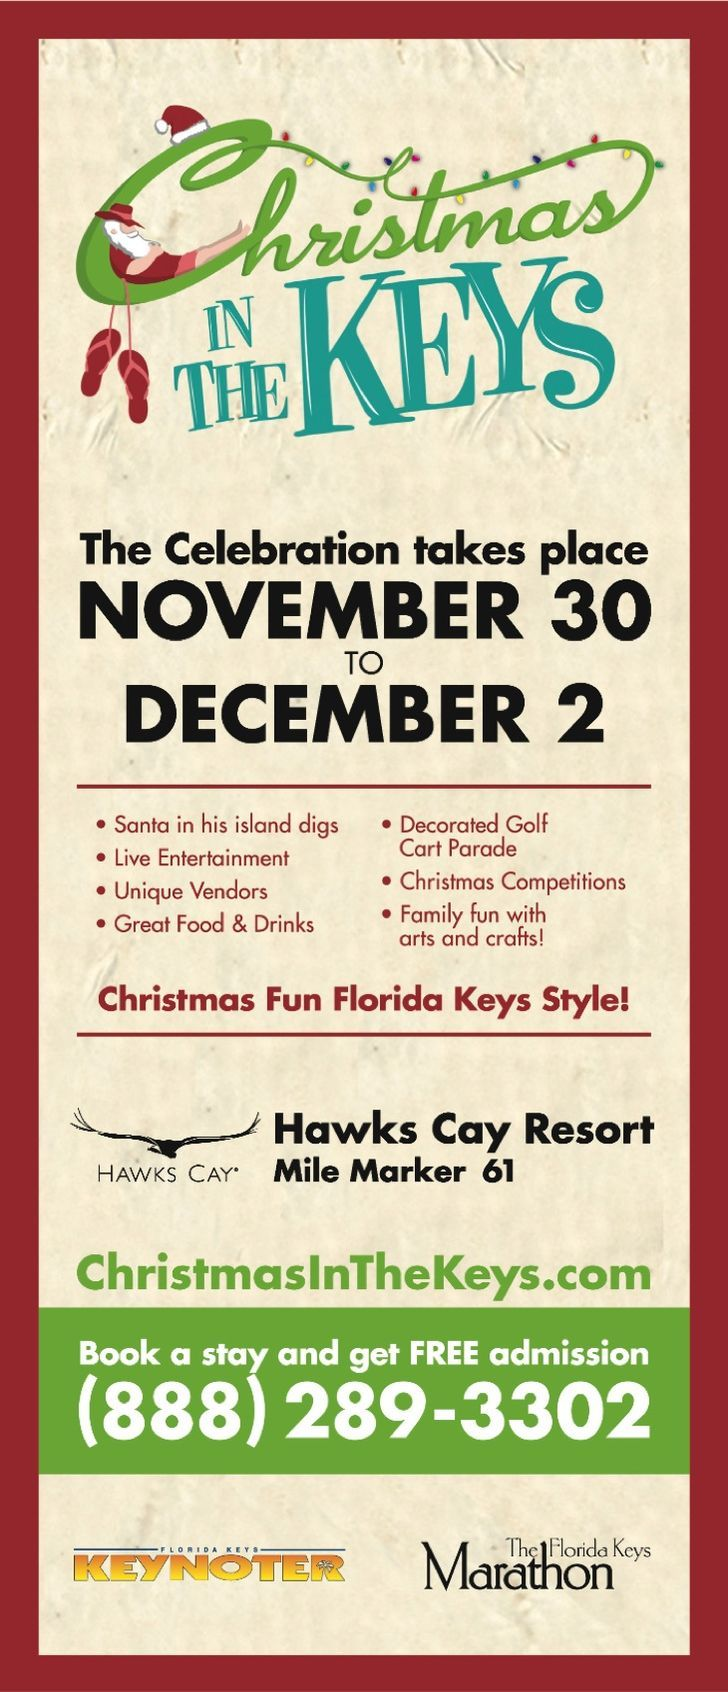 Hawks Cay